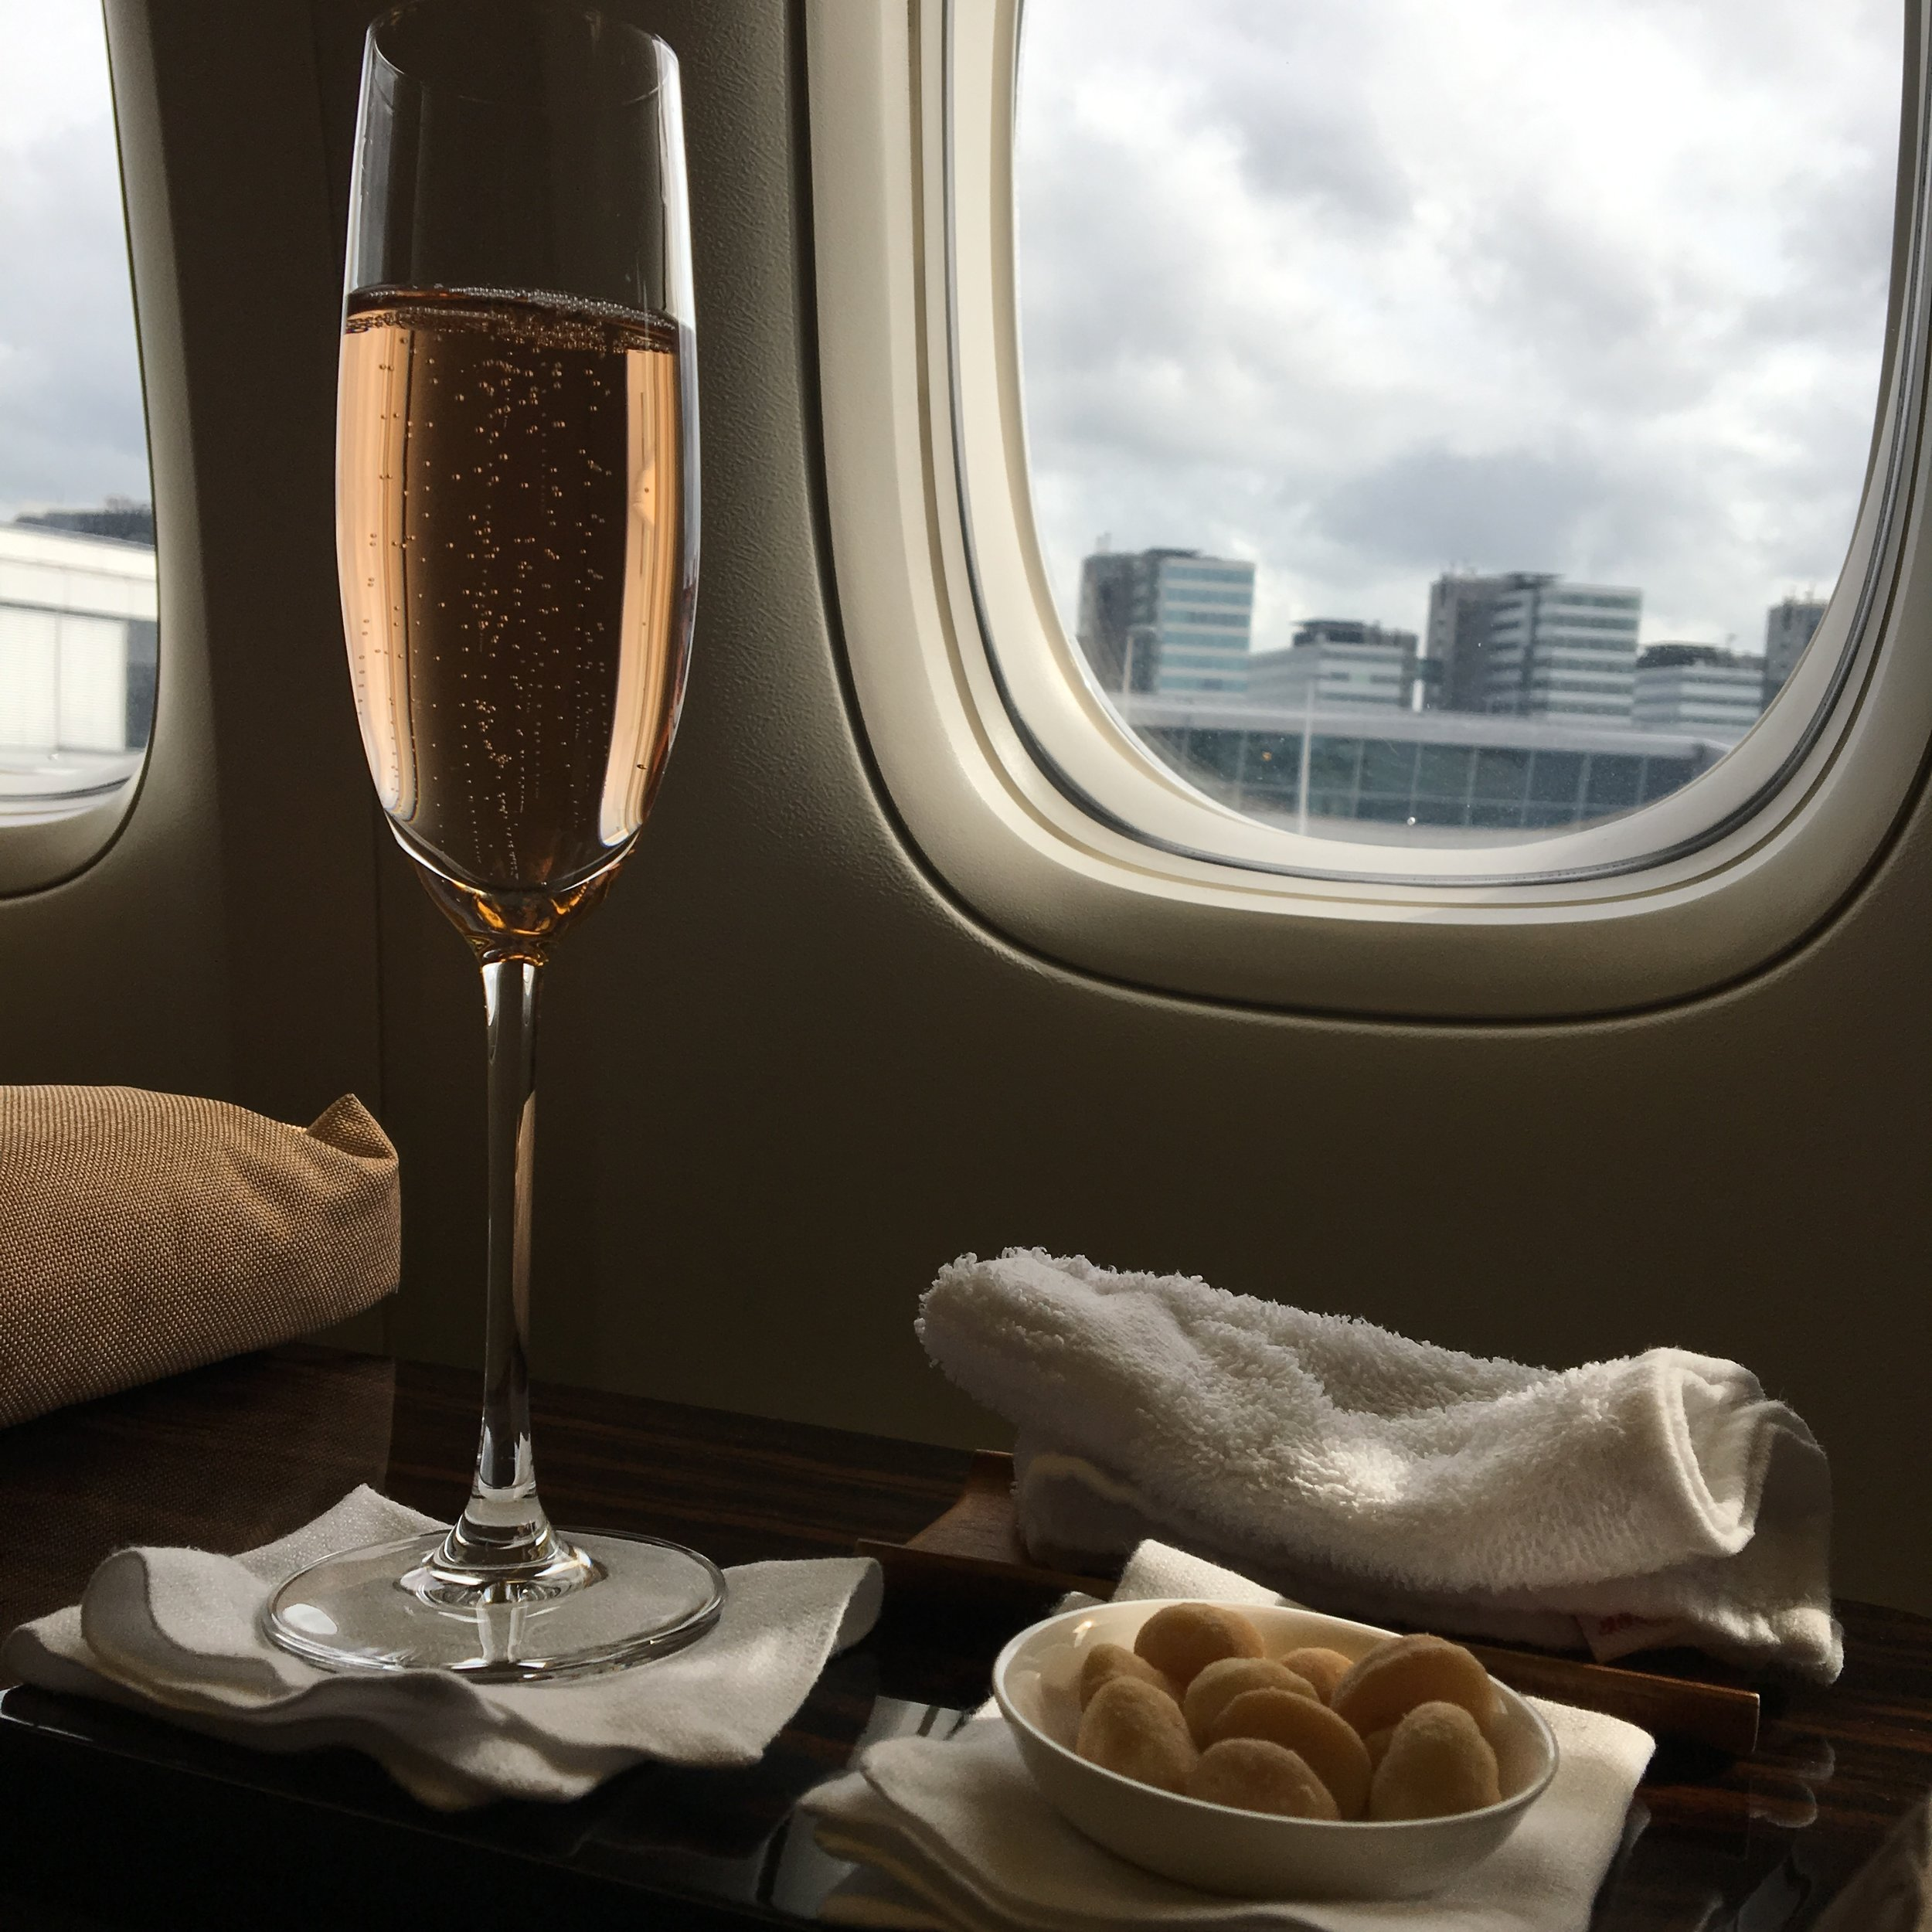 Hot towel service, a nice glass of Billecart - Salmon Brut Rose, and warm macadamia nuts is an excellent way to start a flight.